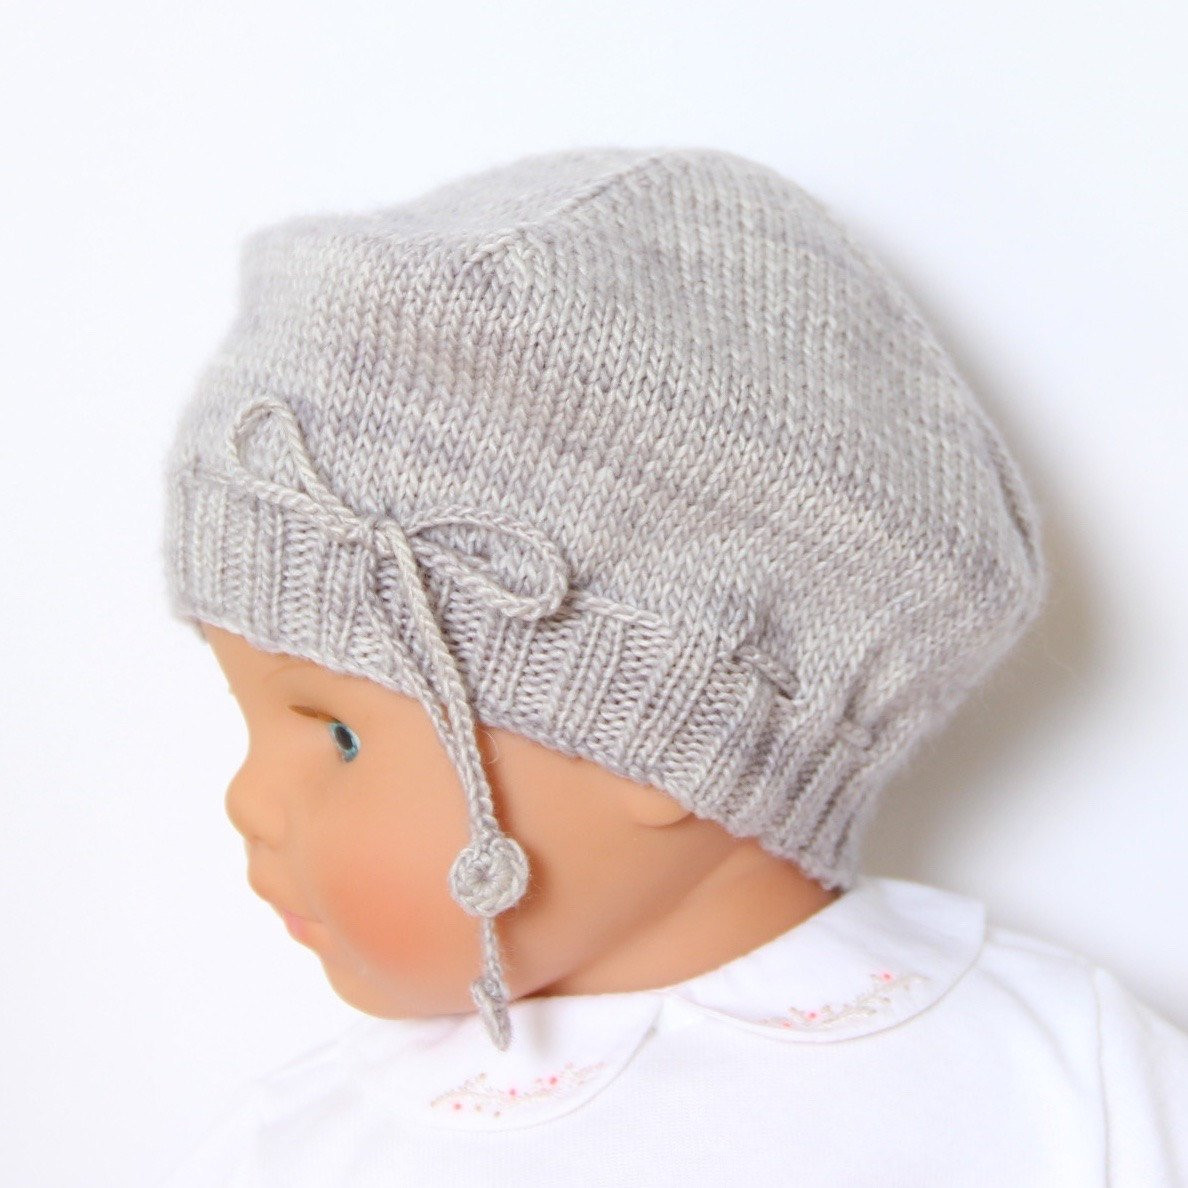 Baby Hat Knitting Pattern Instructions in English PDF